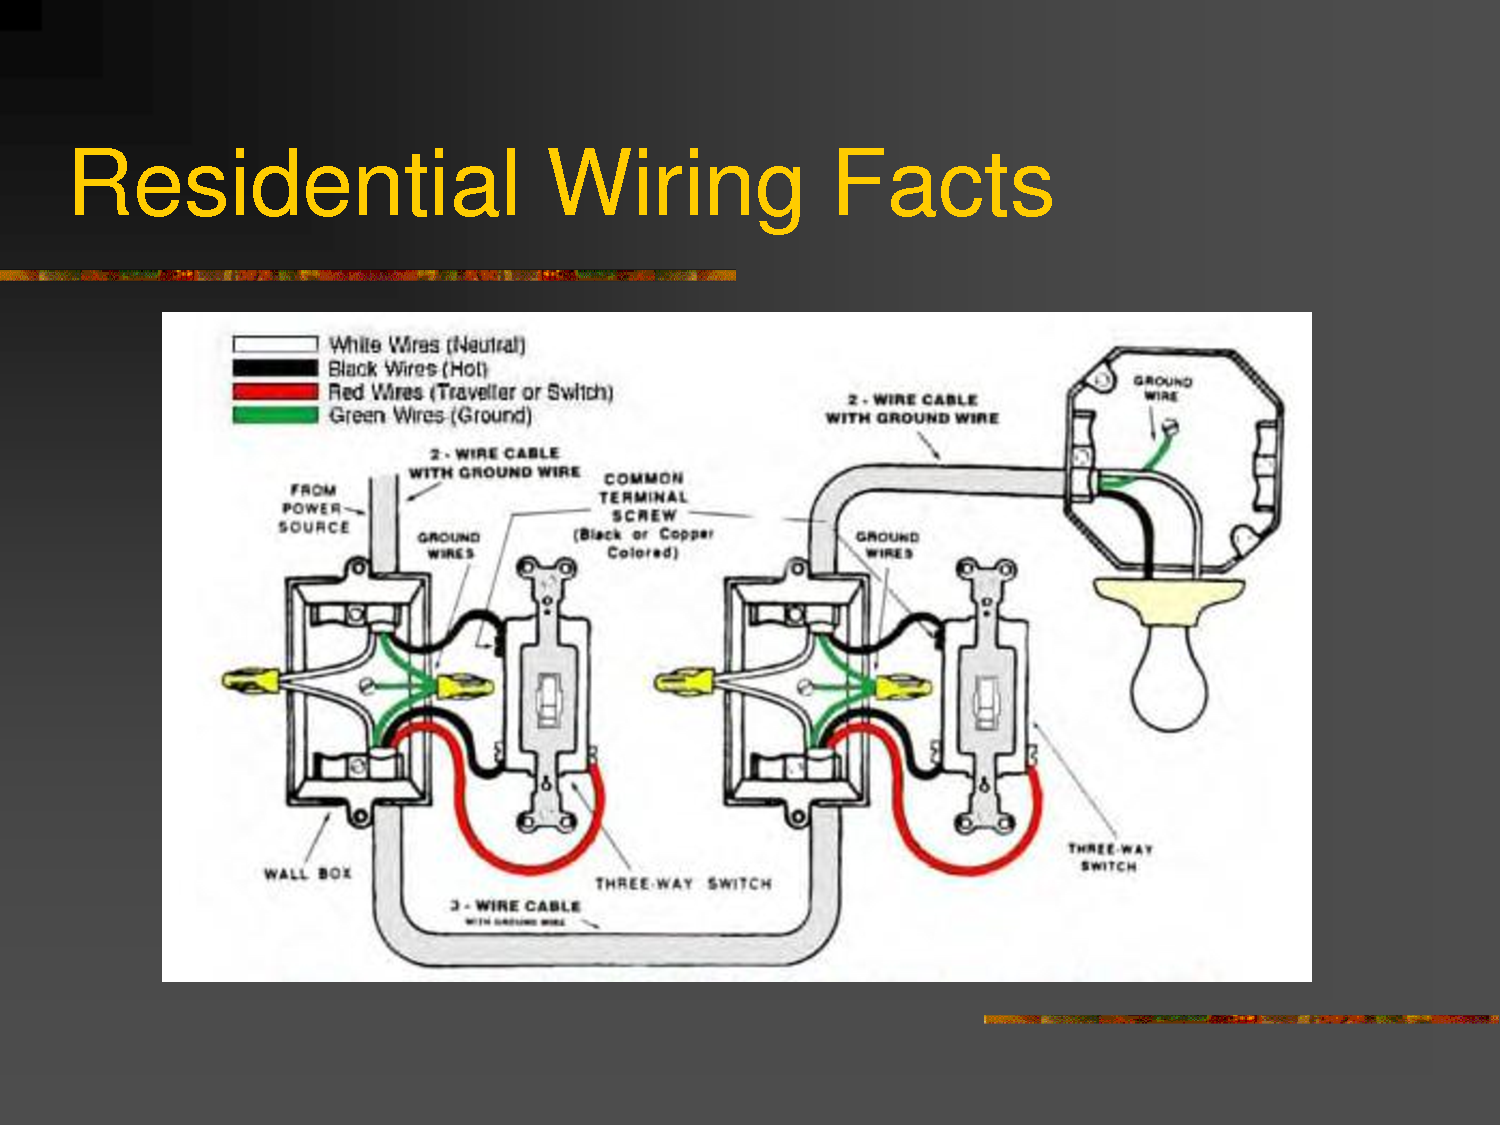 Wire Electrical Switch Wiring Diagram on 55 chevy headlight switch diagram, 3-way switch diagram, 4 wire motor diagram, 3 speed fan switch diagram, 4-way switch diagram, 4-way circuit diagram, 4 wire fan diagram, switch connection diagram, 4 wire pull, 2-way switch diagram,